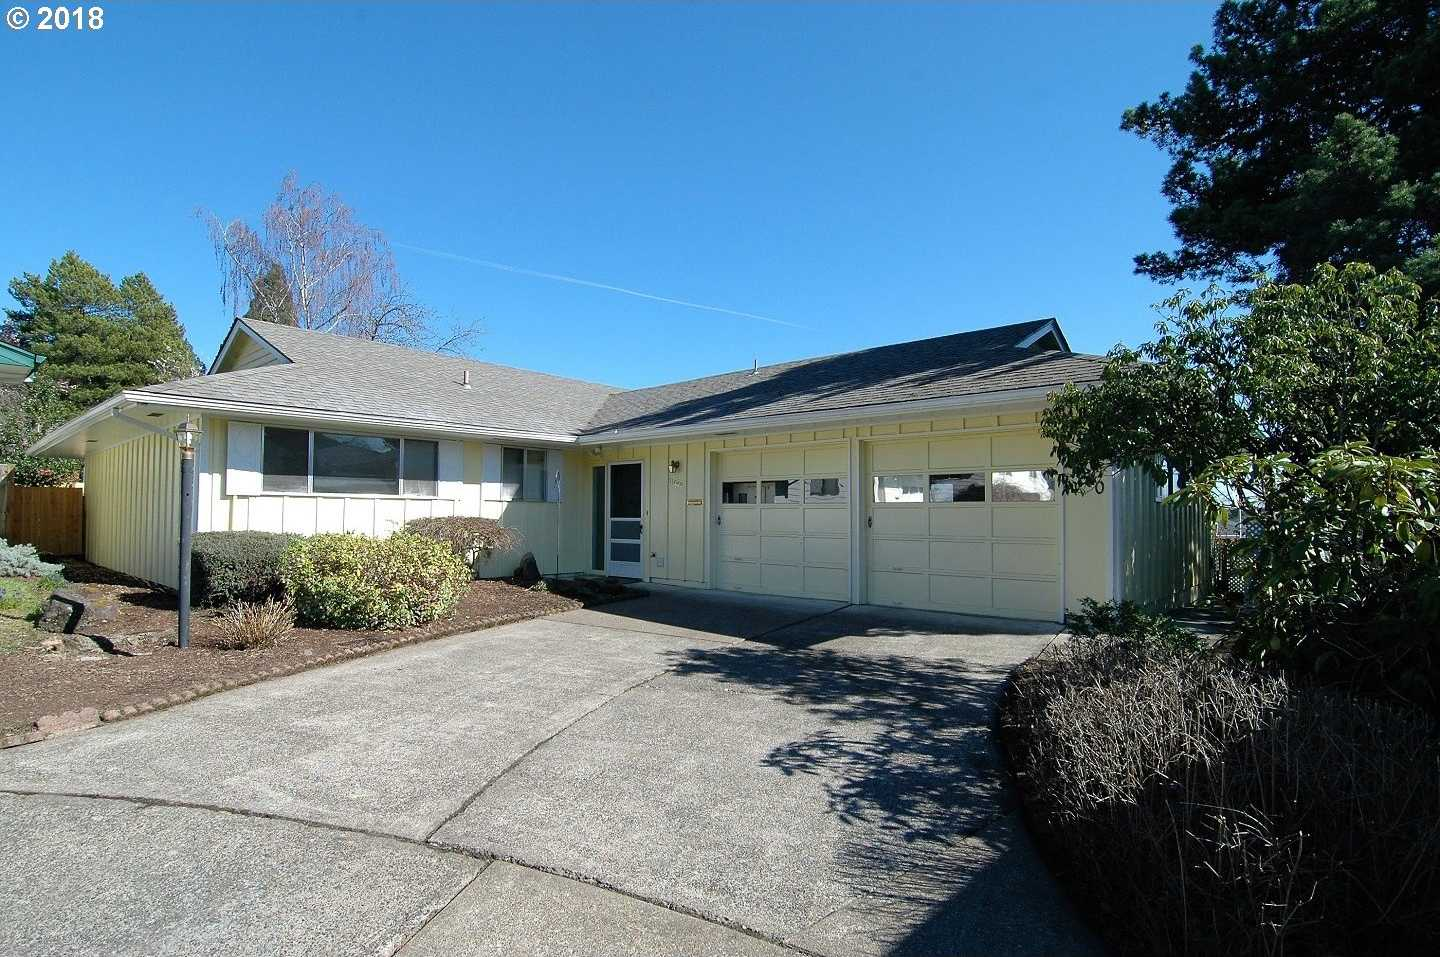 $369,000 - 3Br/2Ba -  for Sale in King City, King City